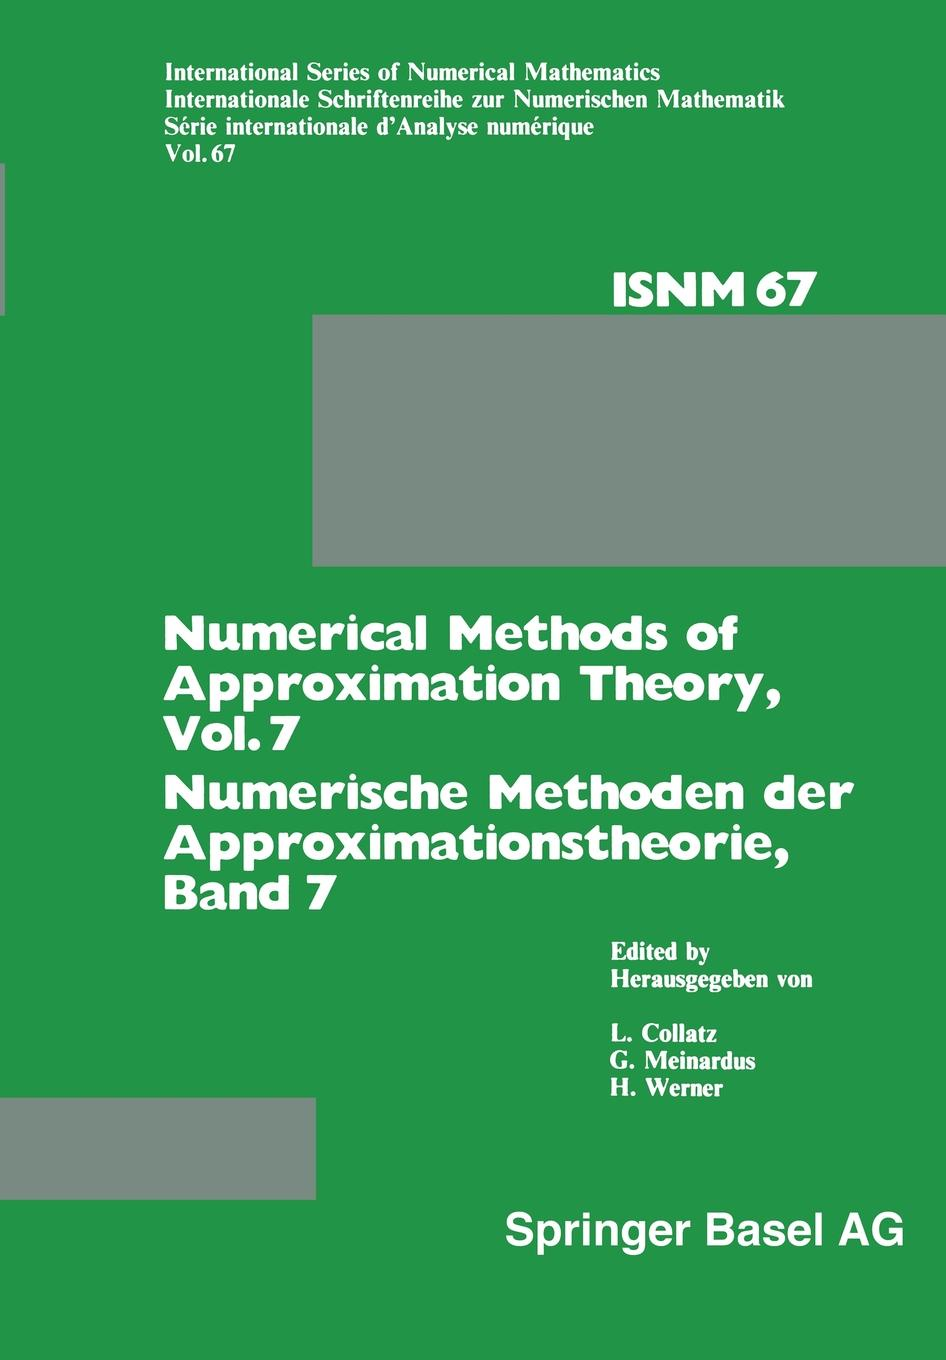 L. Collatz, G. Meinardus, H. Werner Numerical Methods of Approximation Theory, Vol. 7 / Numerische Methoden Der Approximationstheorie, Band 7. Workshop on Numerical Methods of Approximat eisley joe g analysis of structures an introduction including numerical methods